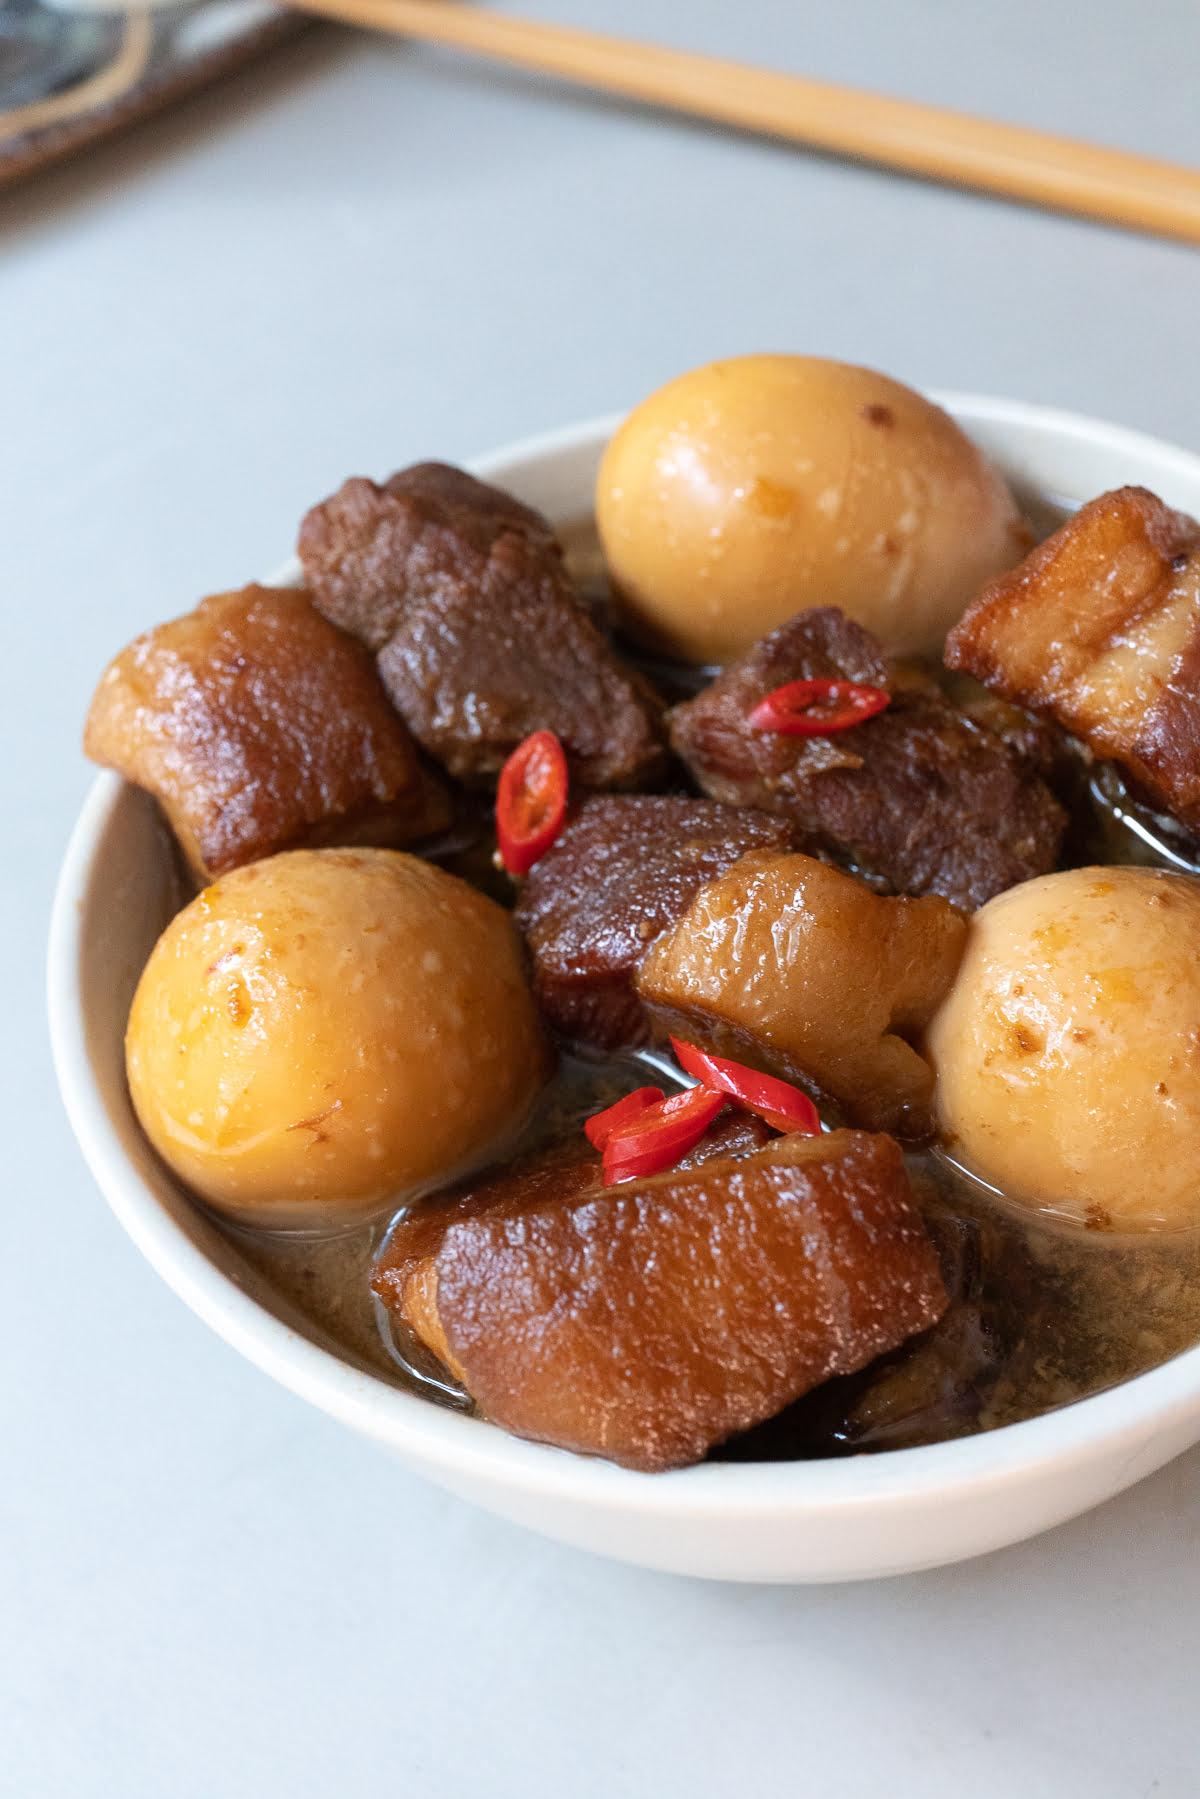 A bowl of Thit Kho (Vietnamese Braised Pork and Egg), ready to eat.